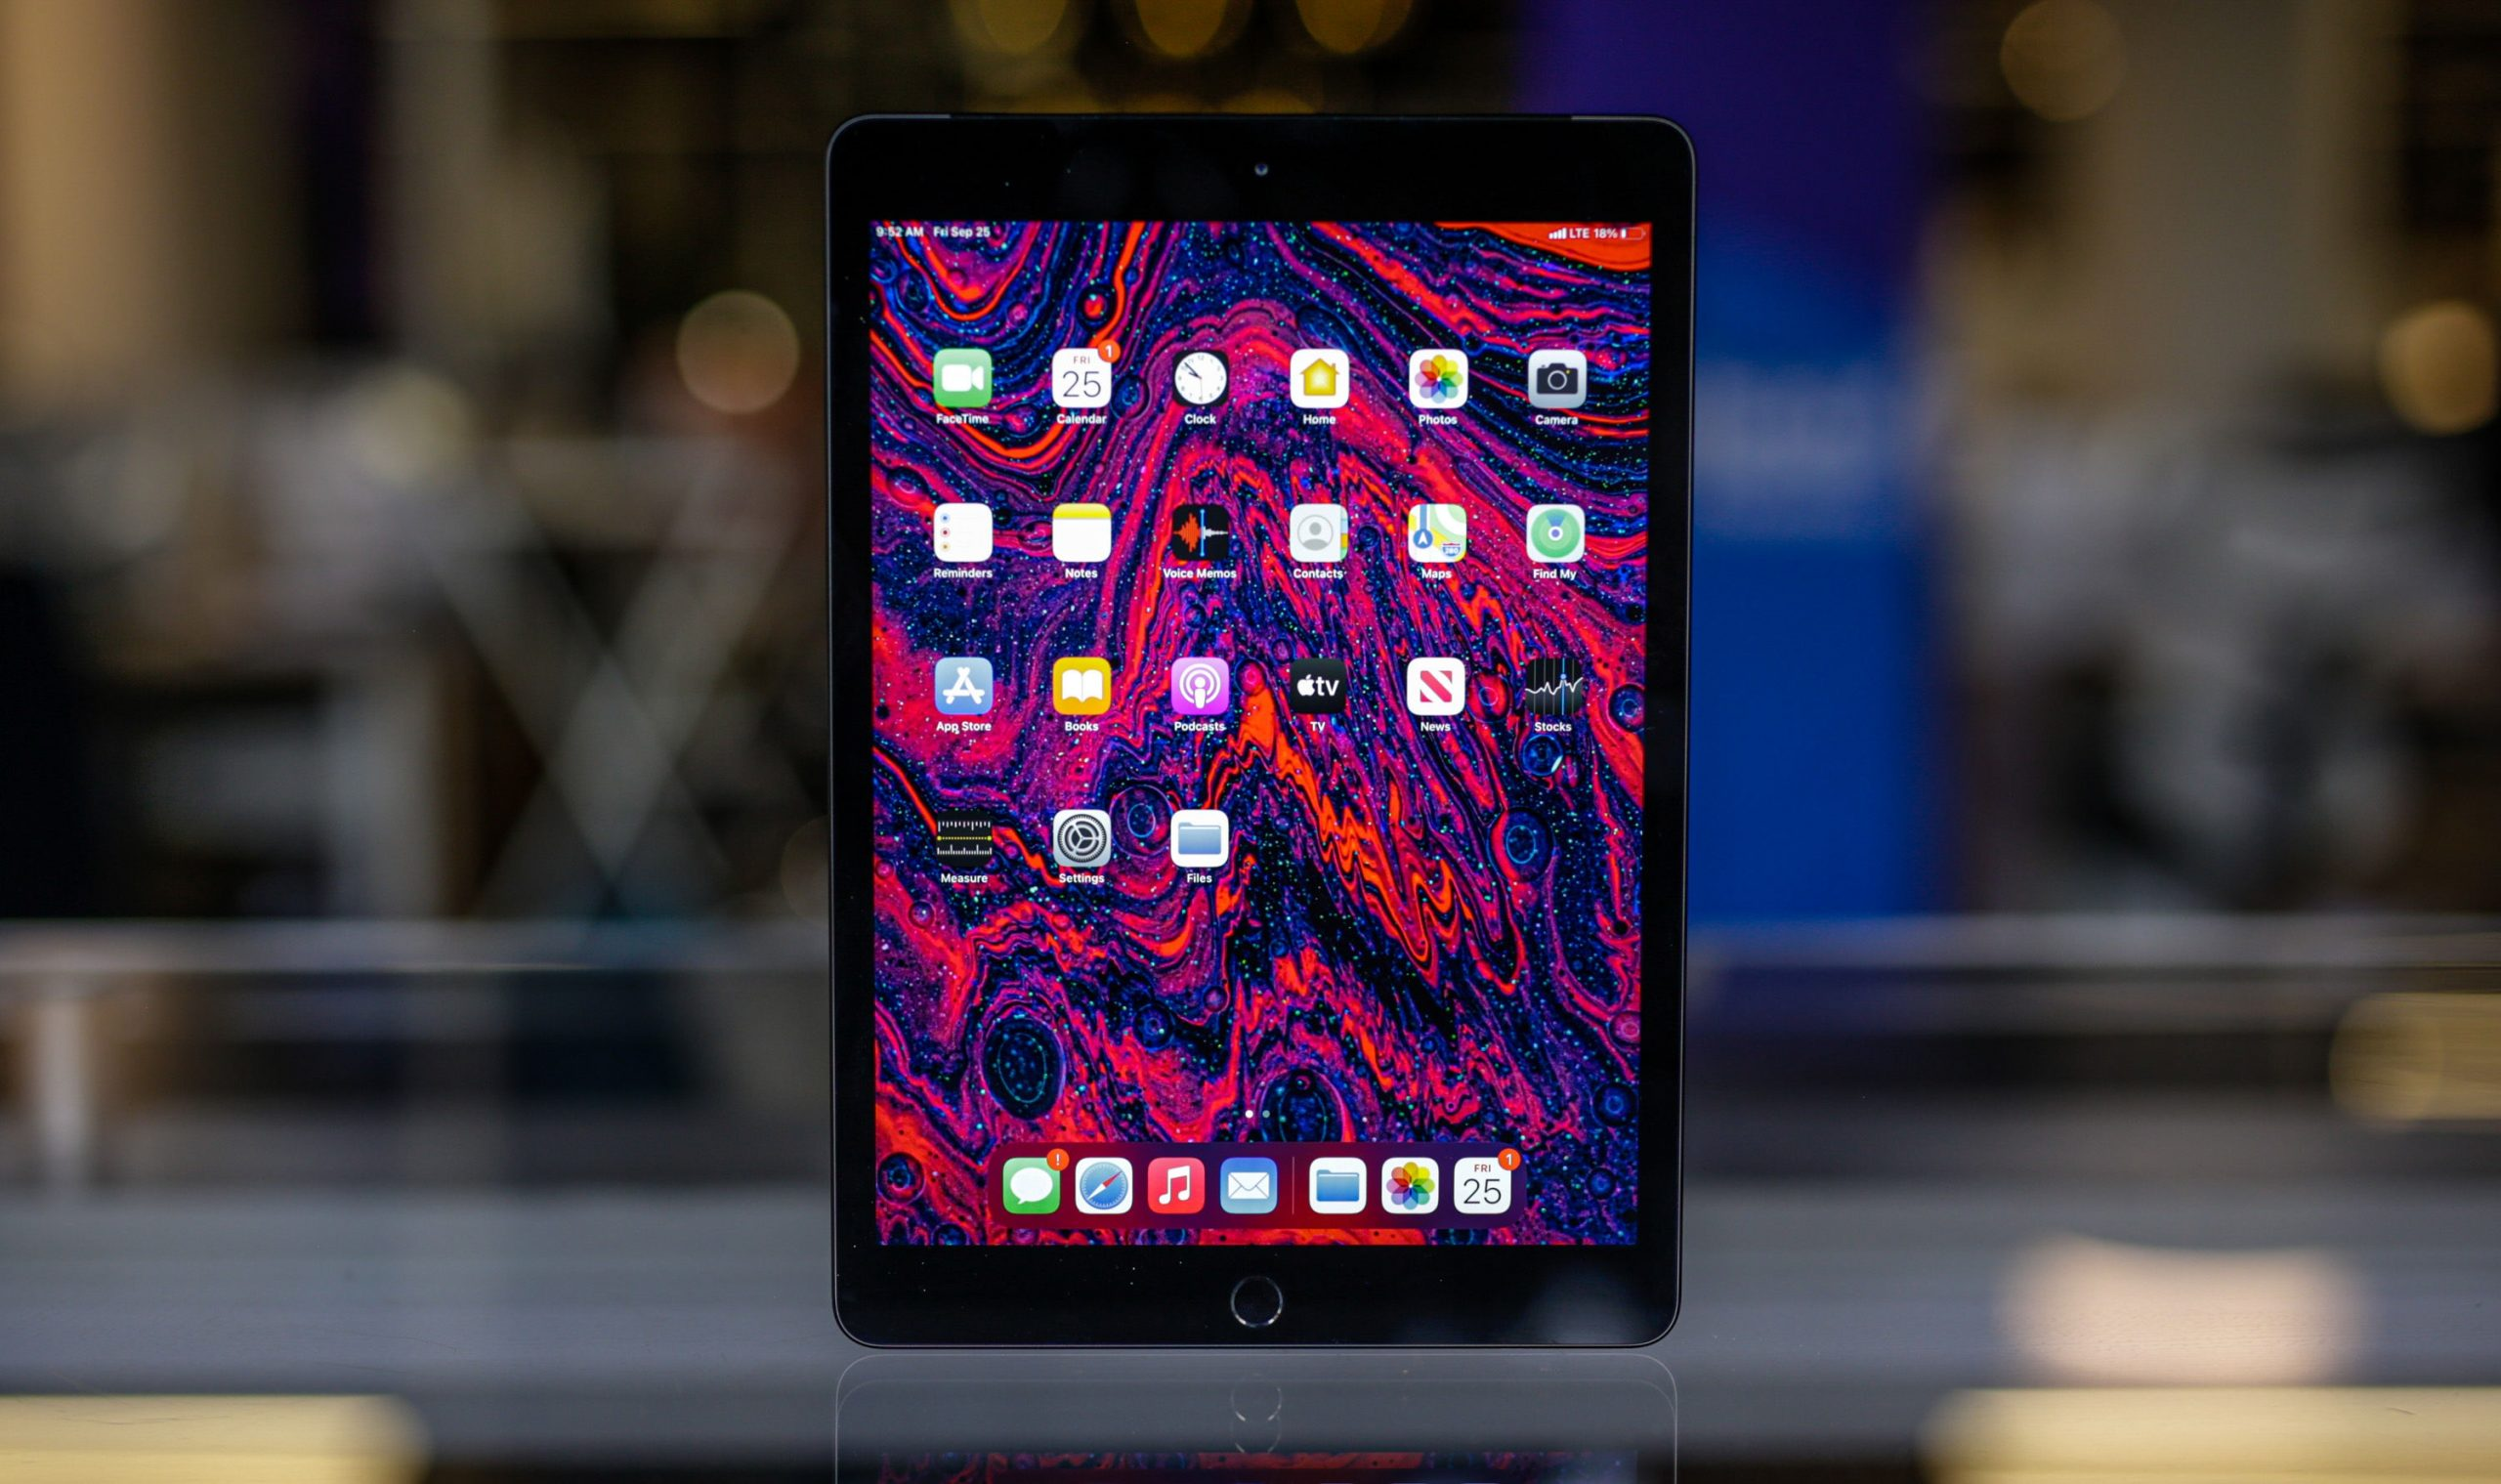 The best deals we found this week: $30 off Apple's iPad and more | DeviceDaily.com